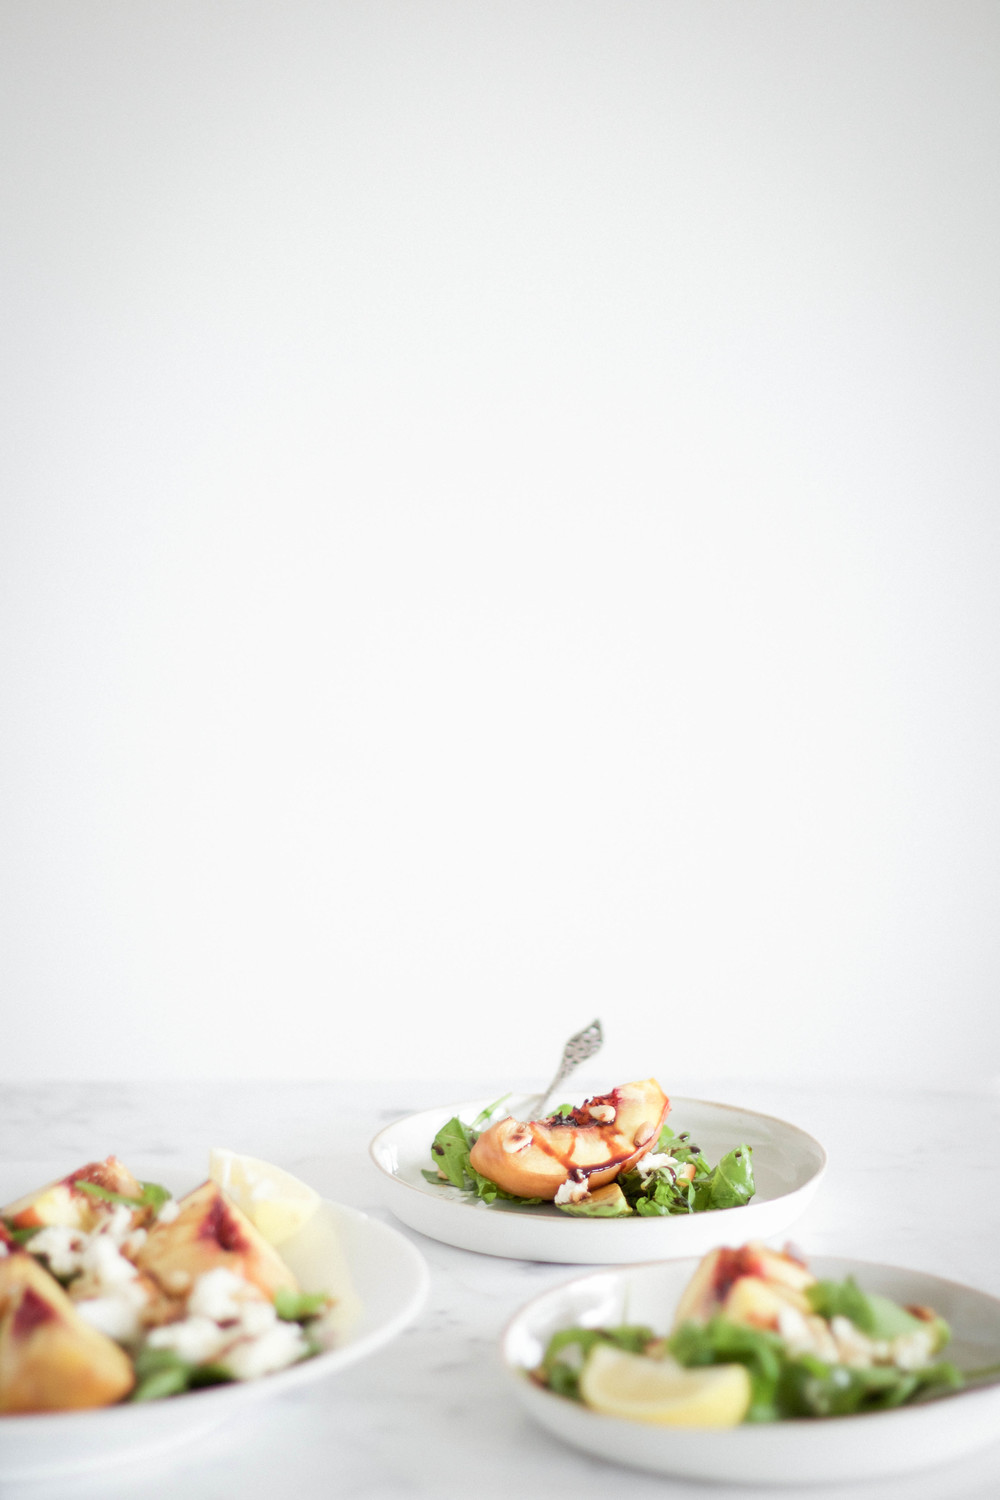 Grilled peach salad with mozzarella and avocado